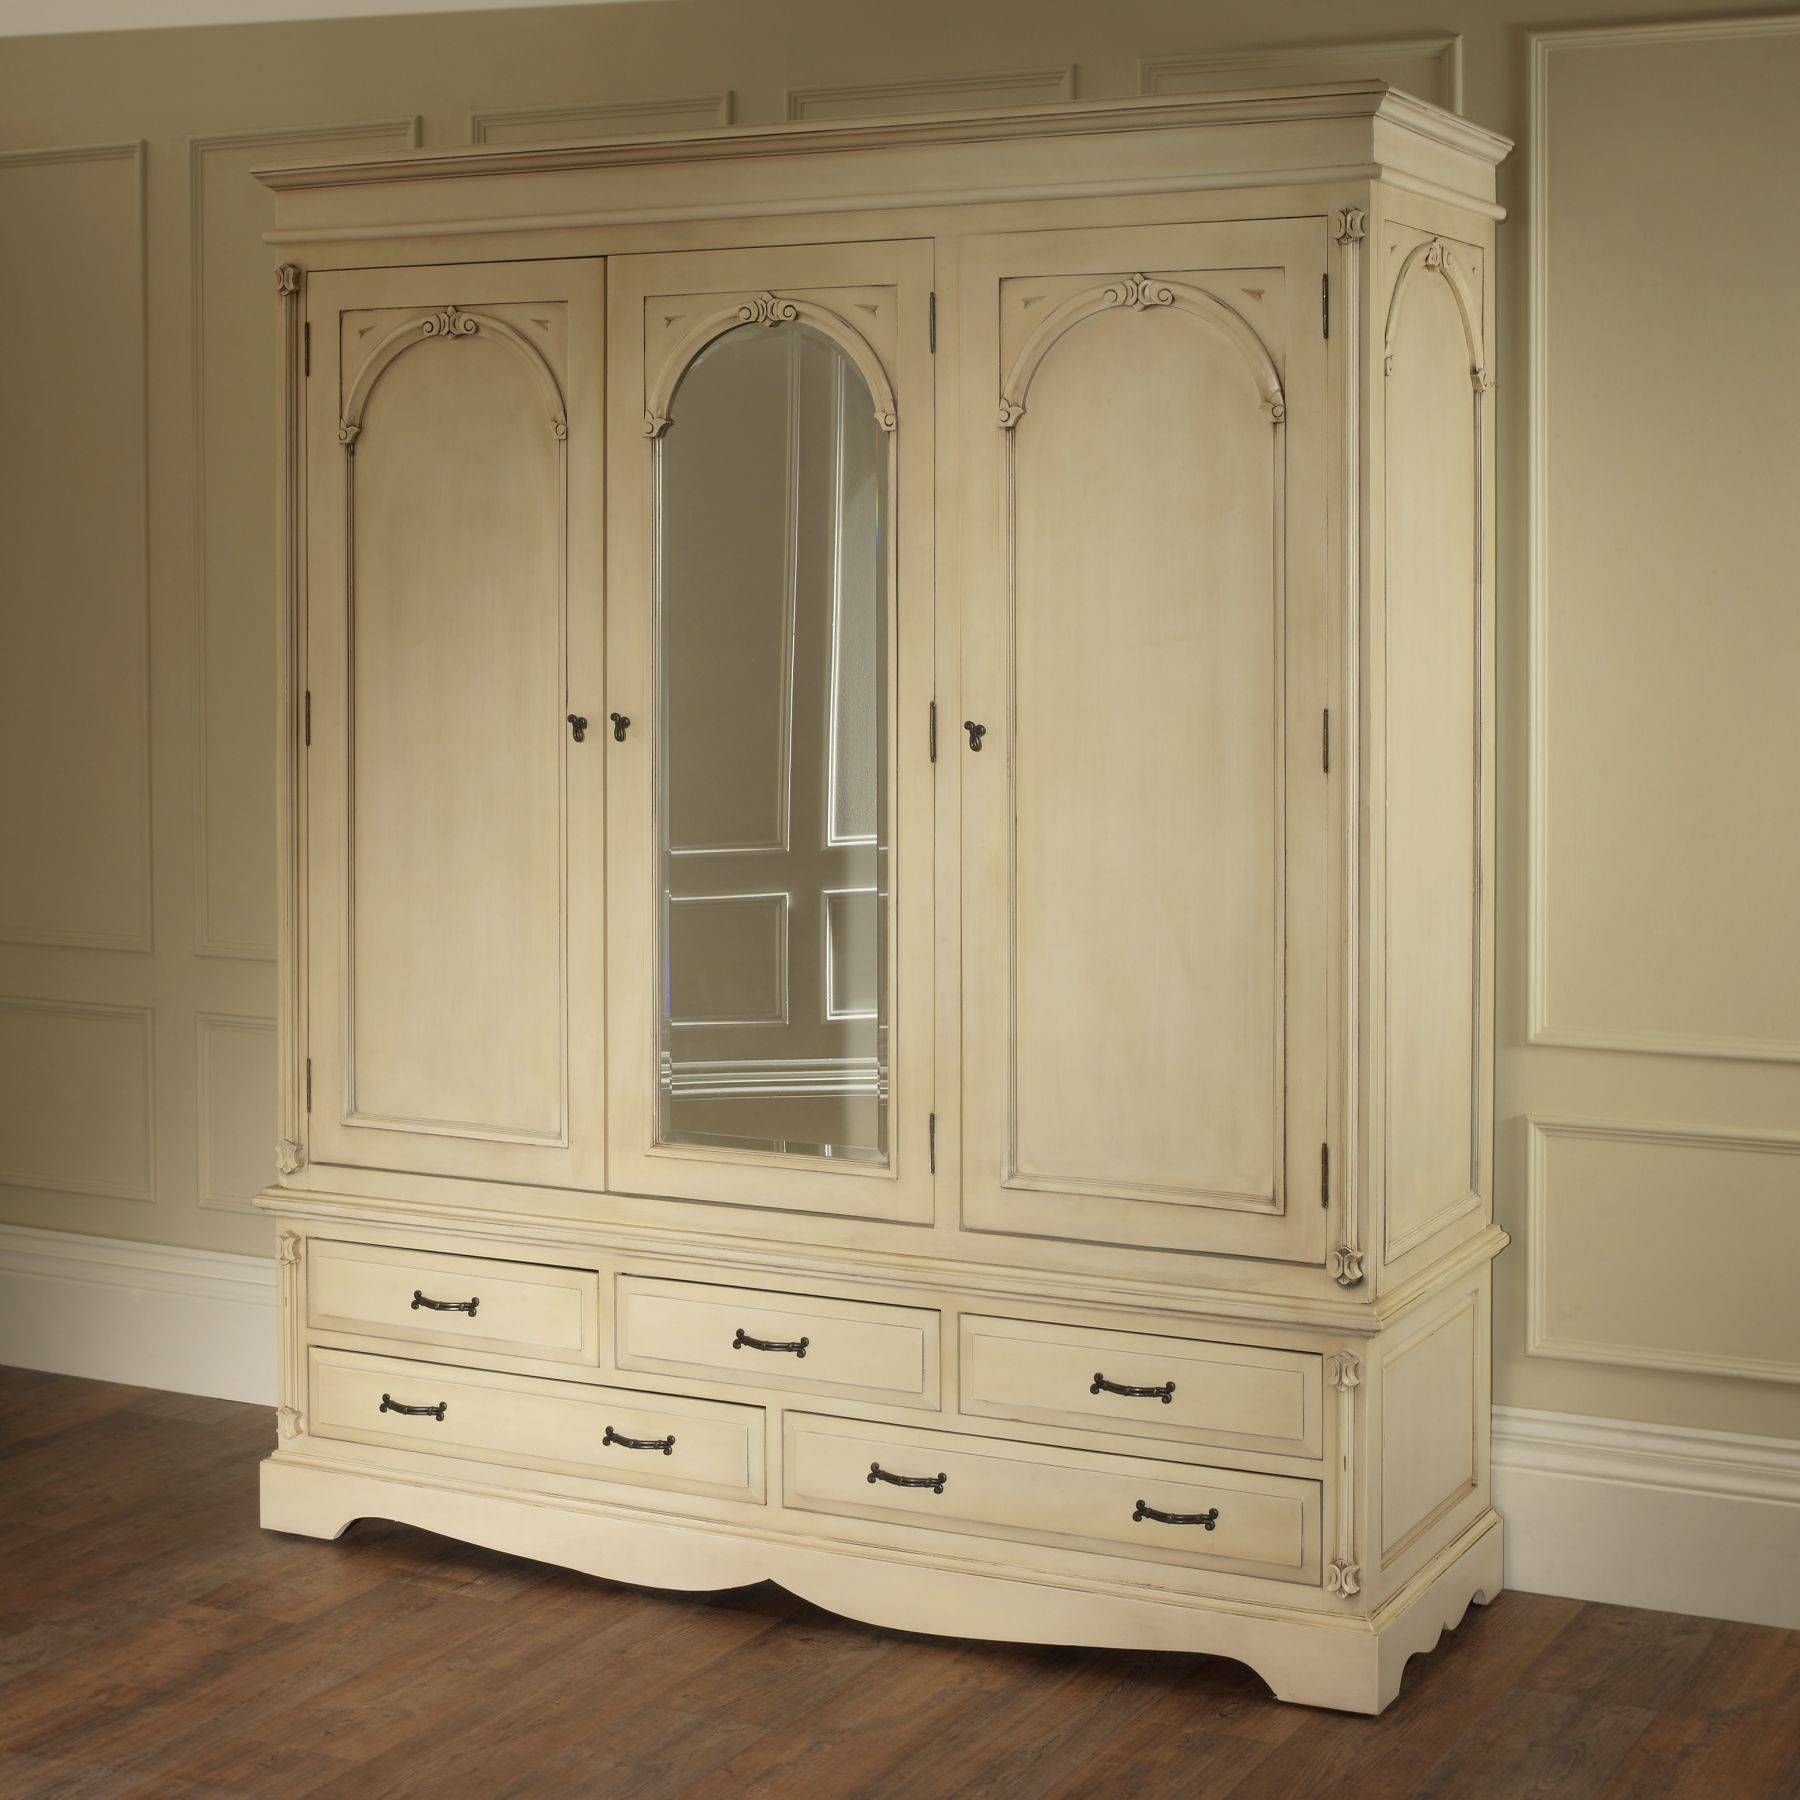 Brusali Wardrobe Explore Gallery Of Cream French Wardrobes Showing 14 Of 15 Photos